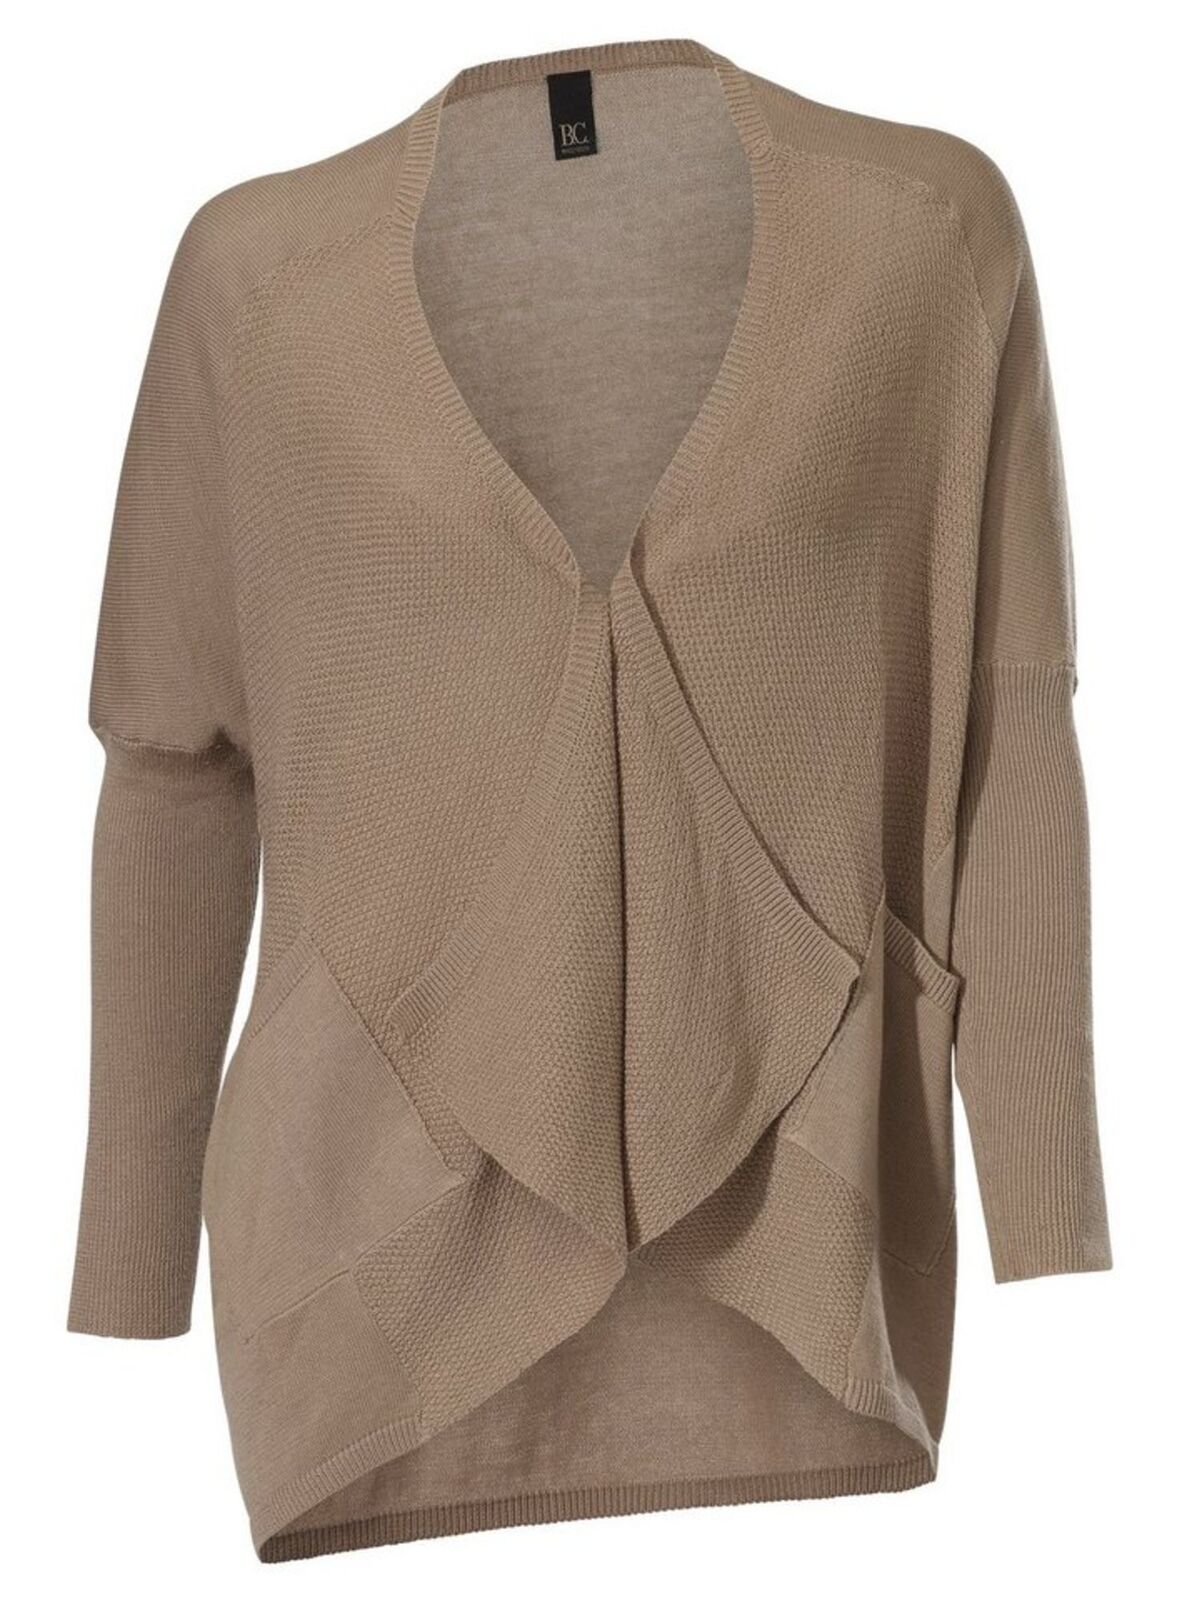 dbdb65ac8fbb Best Connections by Heine Fine Knit Cardigan Closure Los Beige Melange 40